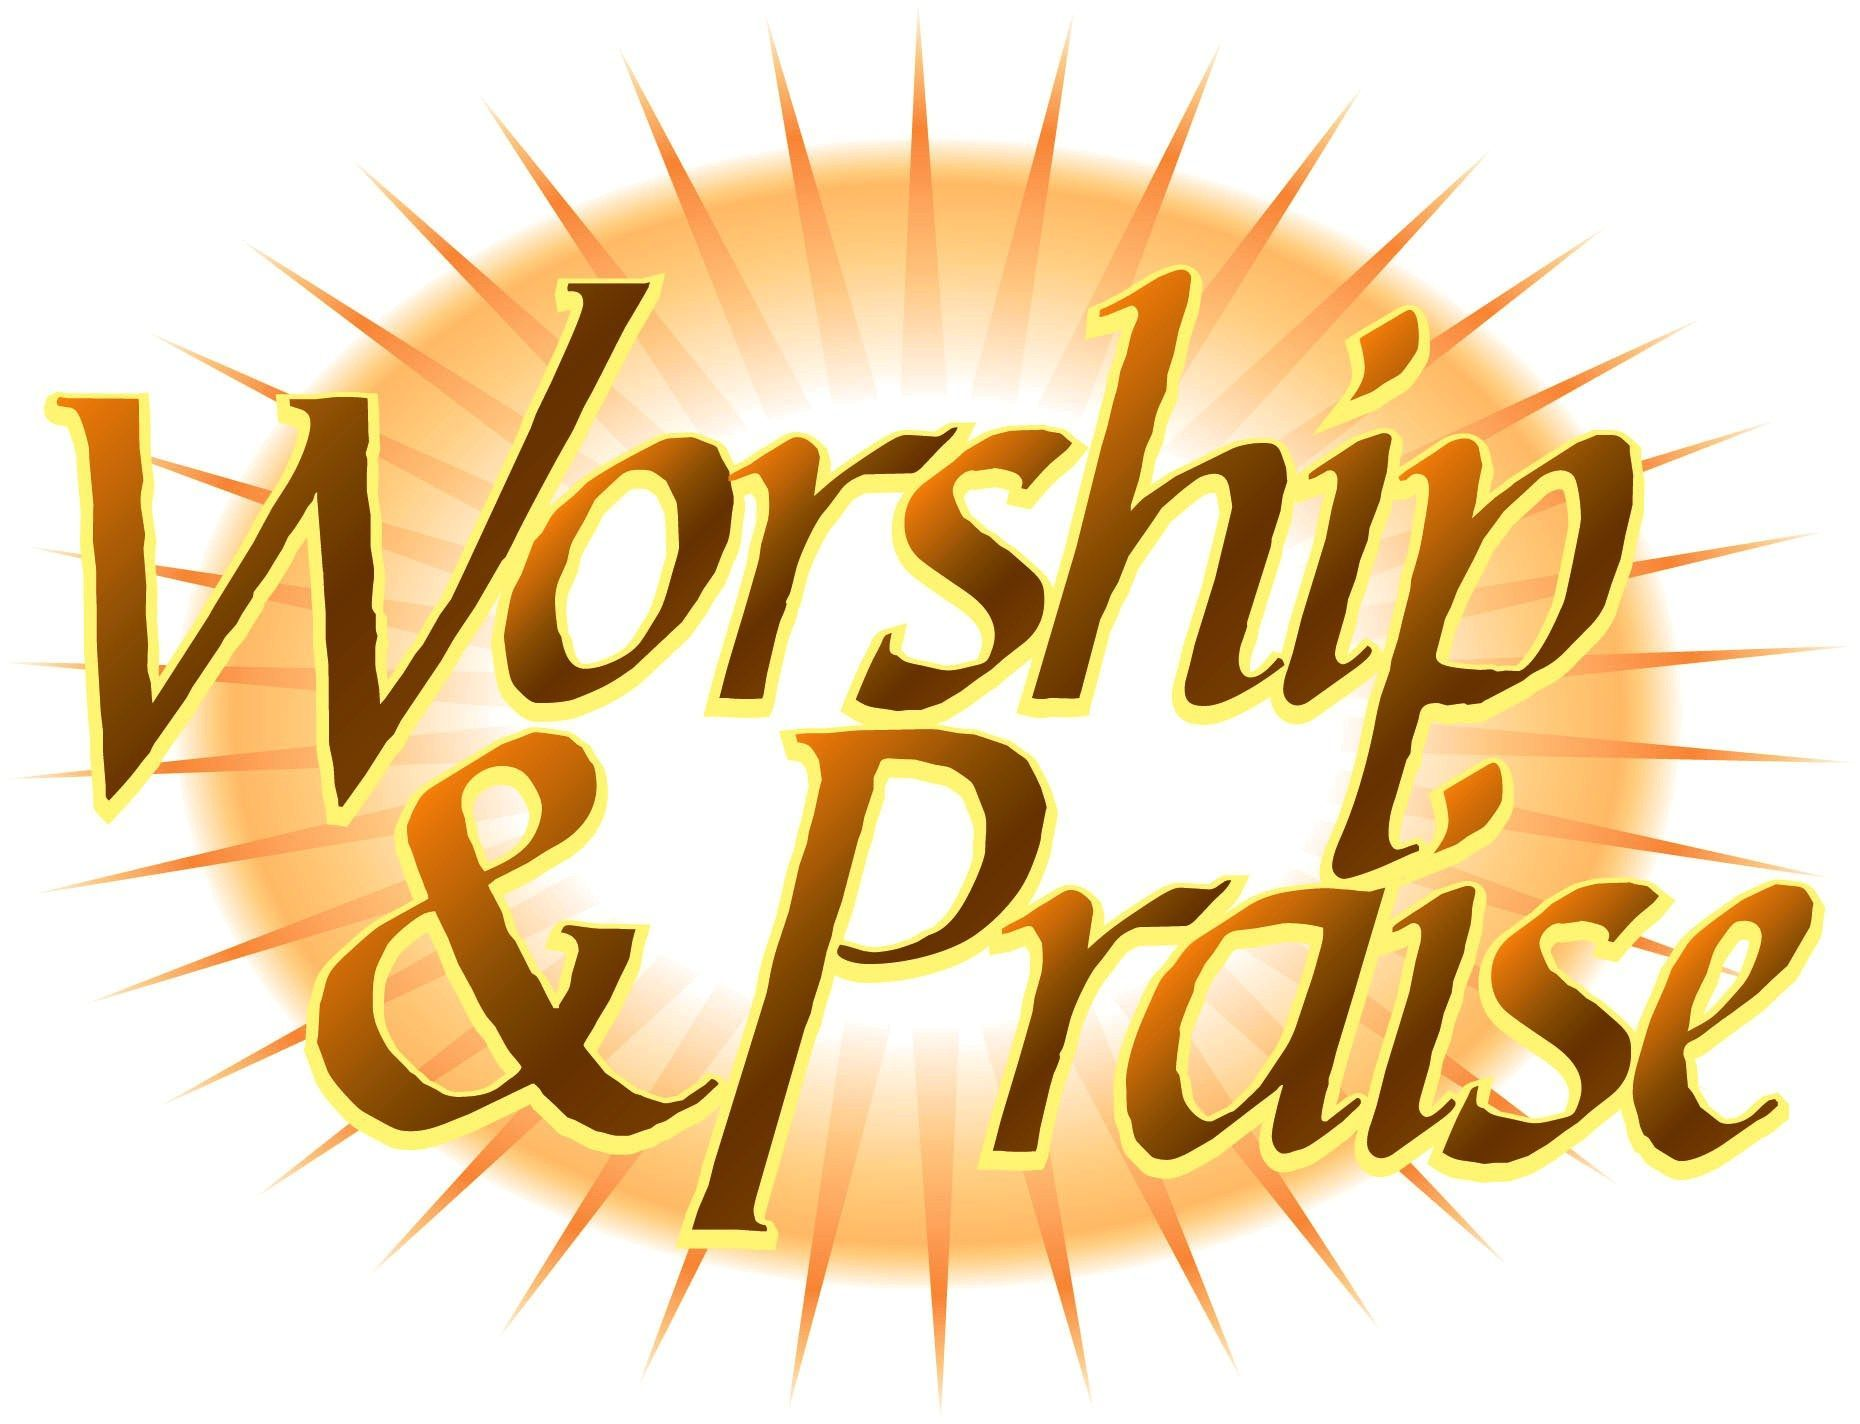 Praise and worship clipart free 3 » Clipart Portal.